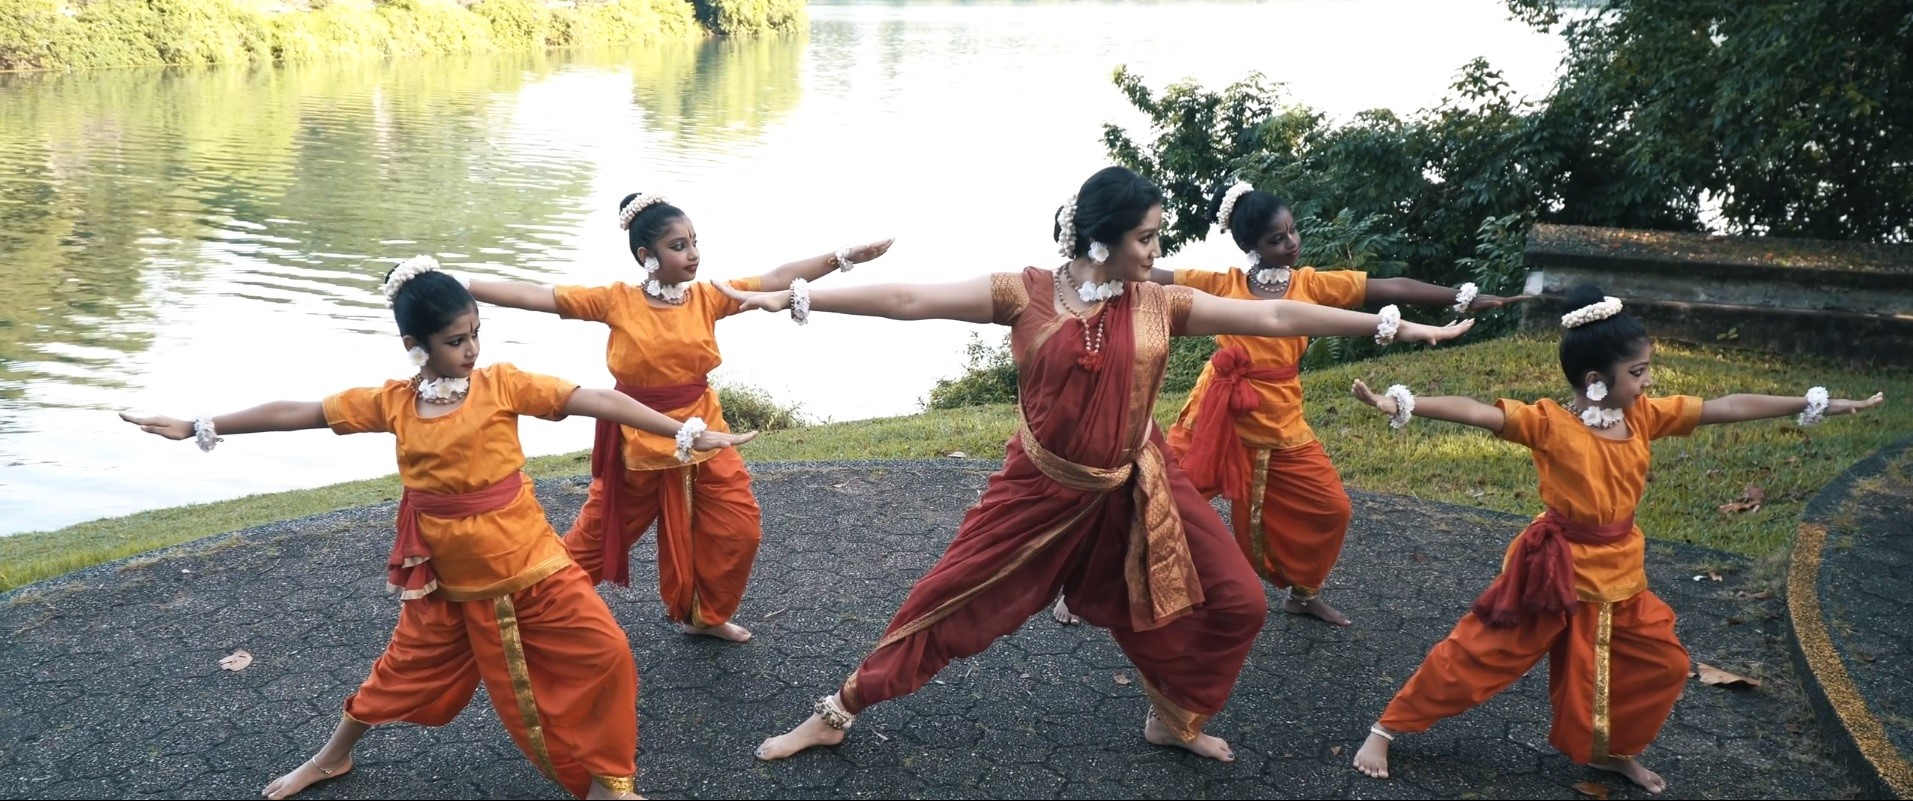 Ramayana Retold: Warriors in the making by Gayathri Dance Academy. Photo Courtesy: IHC